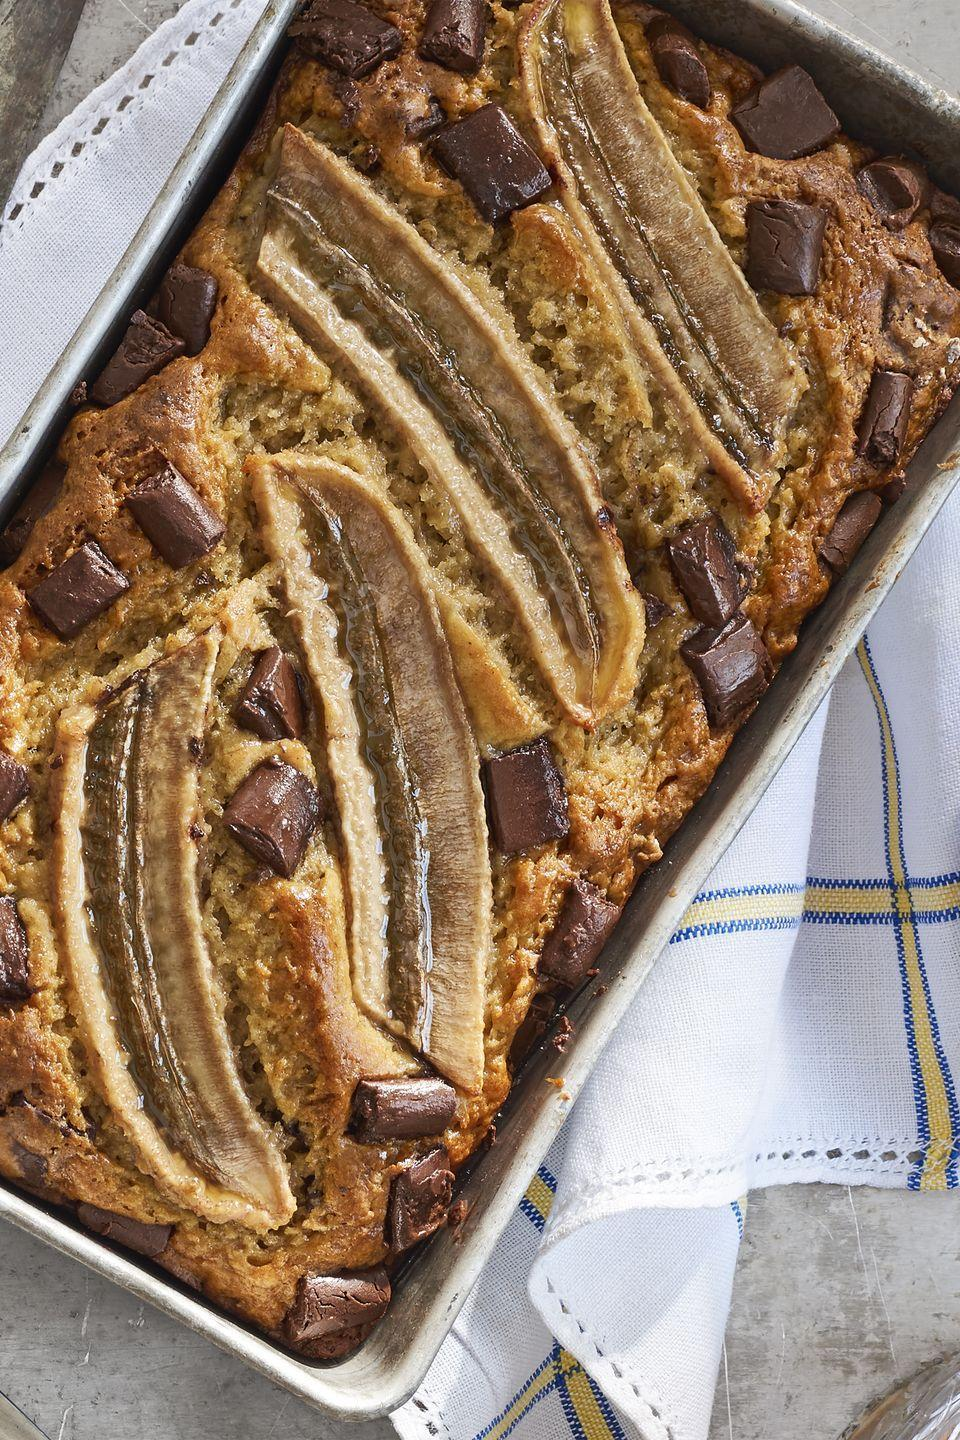 """<p>Prep a delicious batch of banana bread in one bowl in just 20 minutes.</p><p><strong><a href=""""https://www.countryliving.com/food-drinks/recipes/a41637/one-bowl-chocolate-banana-bread-recipe/"""" rel=""""nofollow noopener"""" target=""""_blank"""" data-ylk=""""slk:Get the recipe"""" class=""""link rapid-noclick-resp"""">Get the recipe</a>.</strong></p>"""